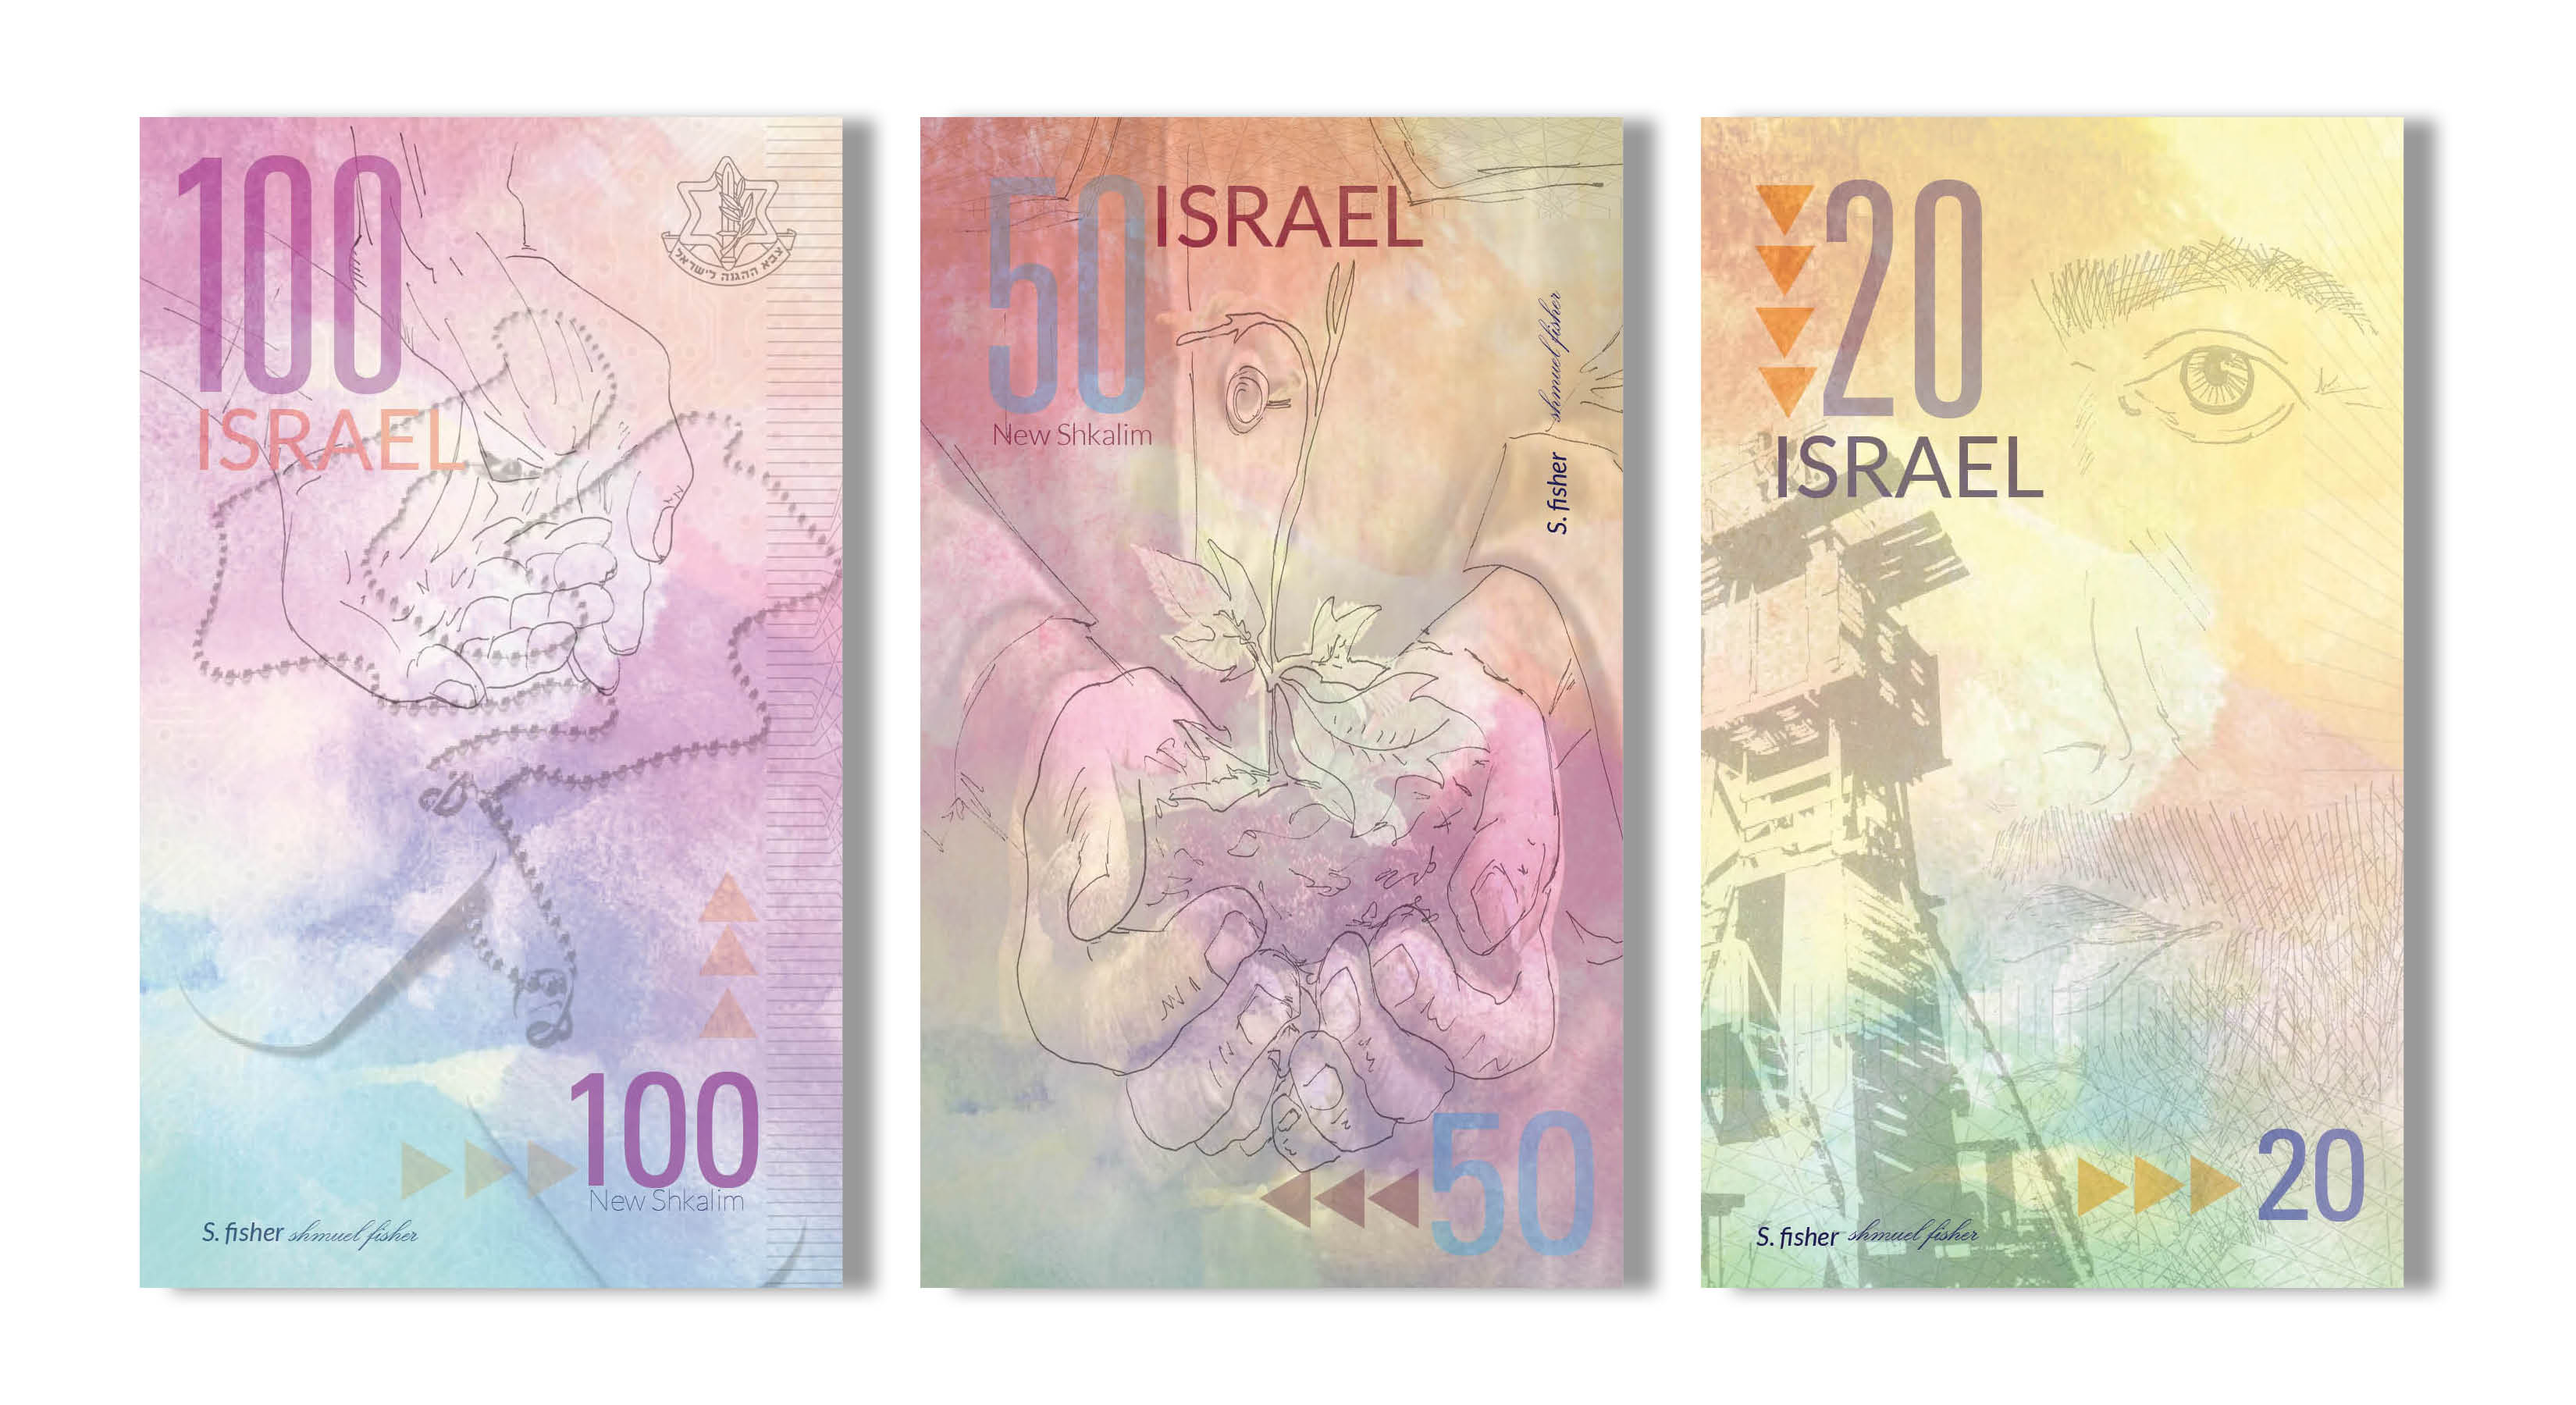 sharon sarfati design currency design